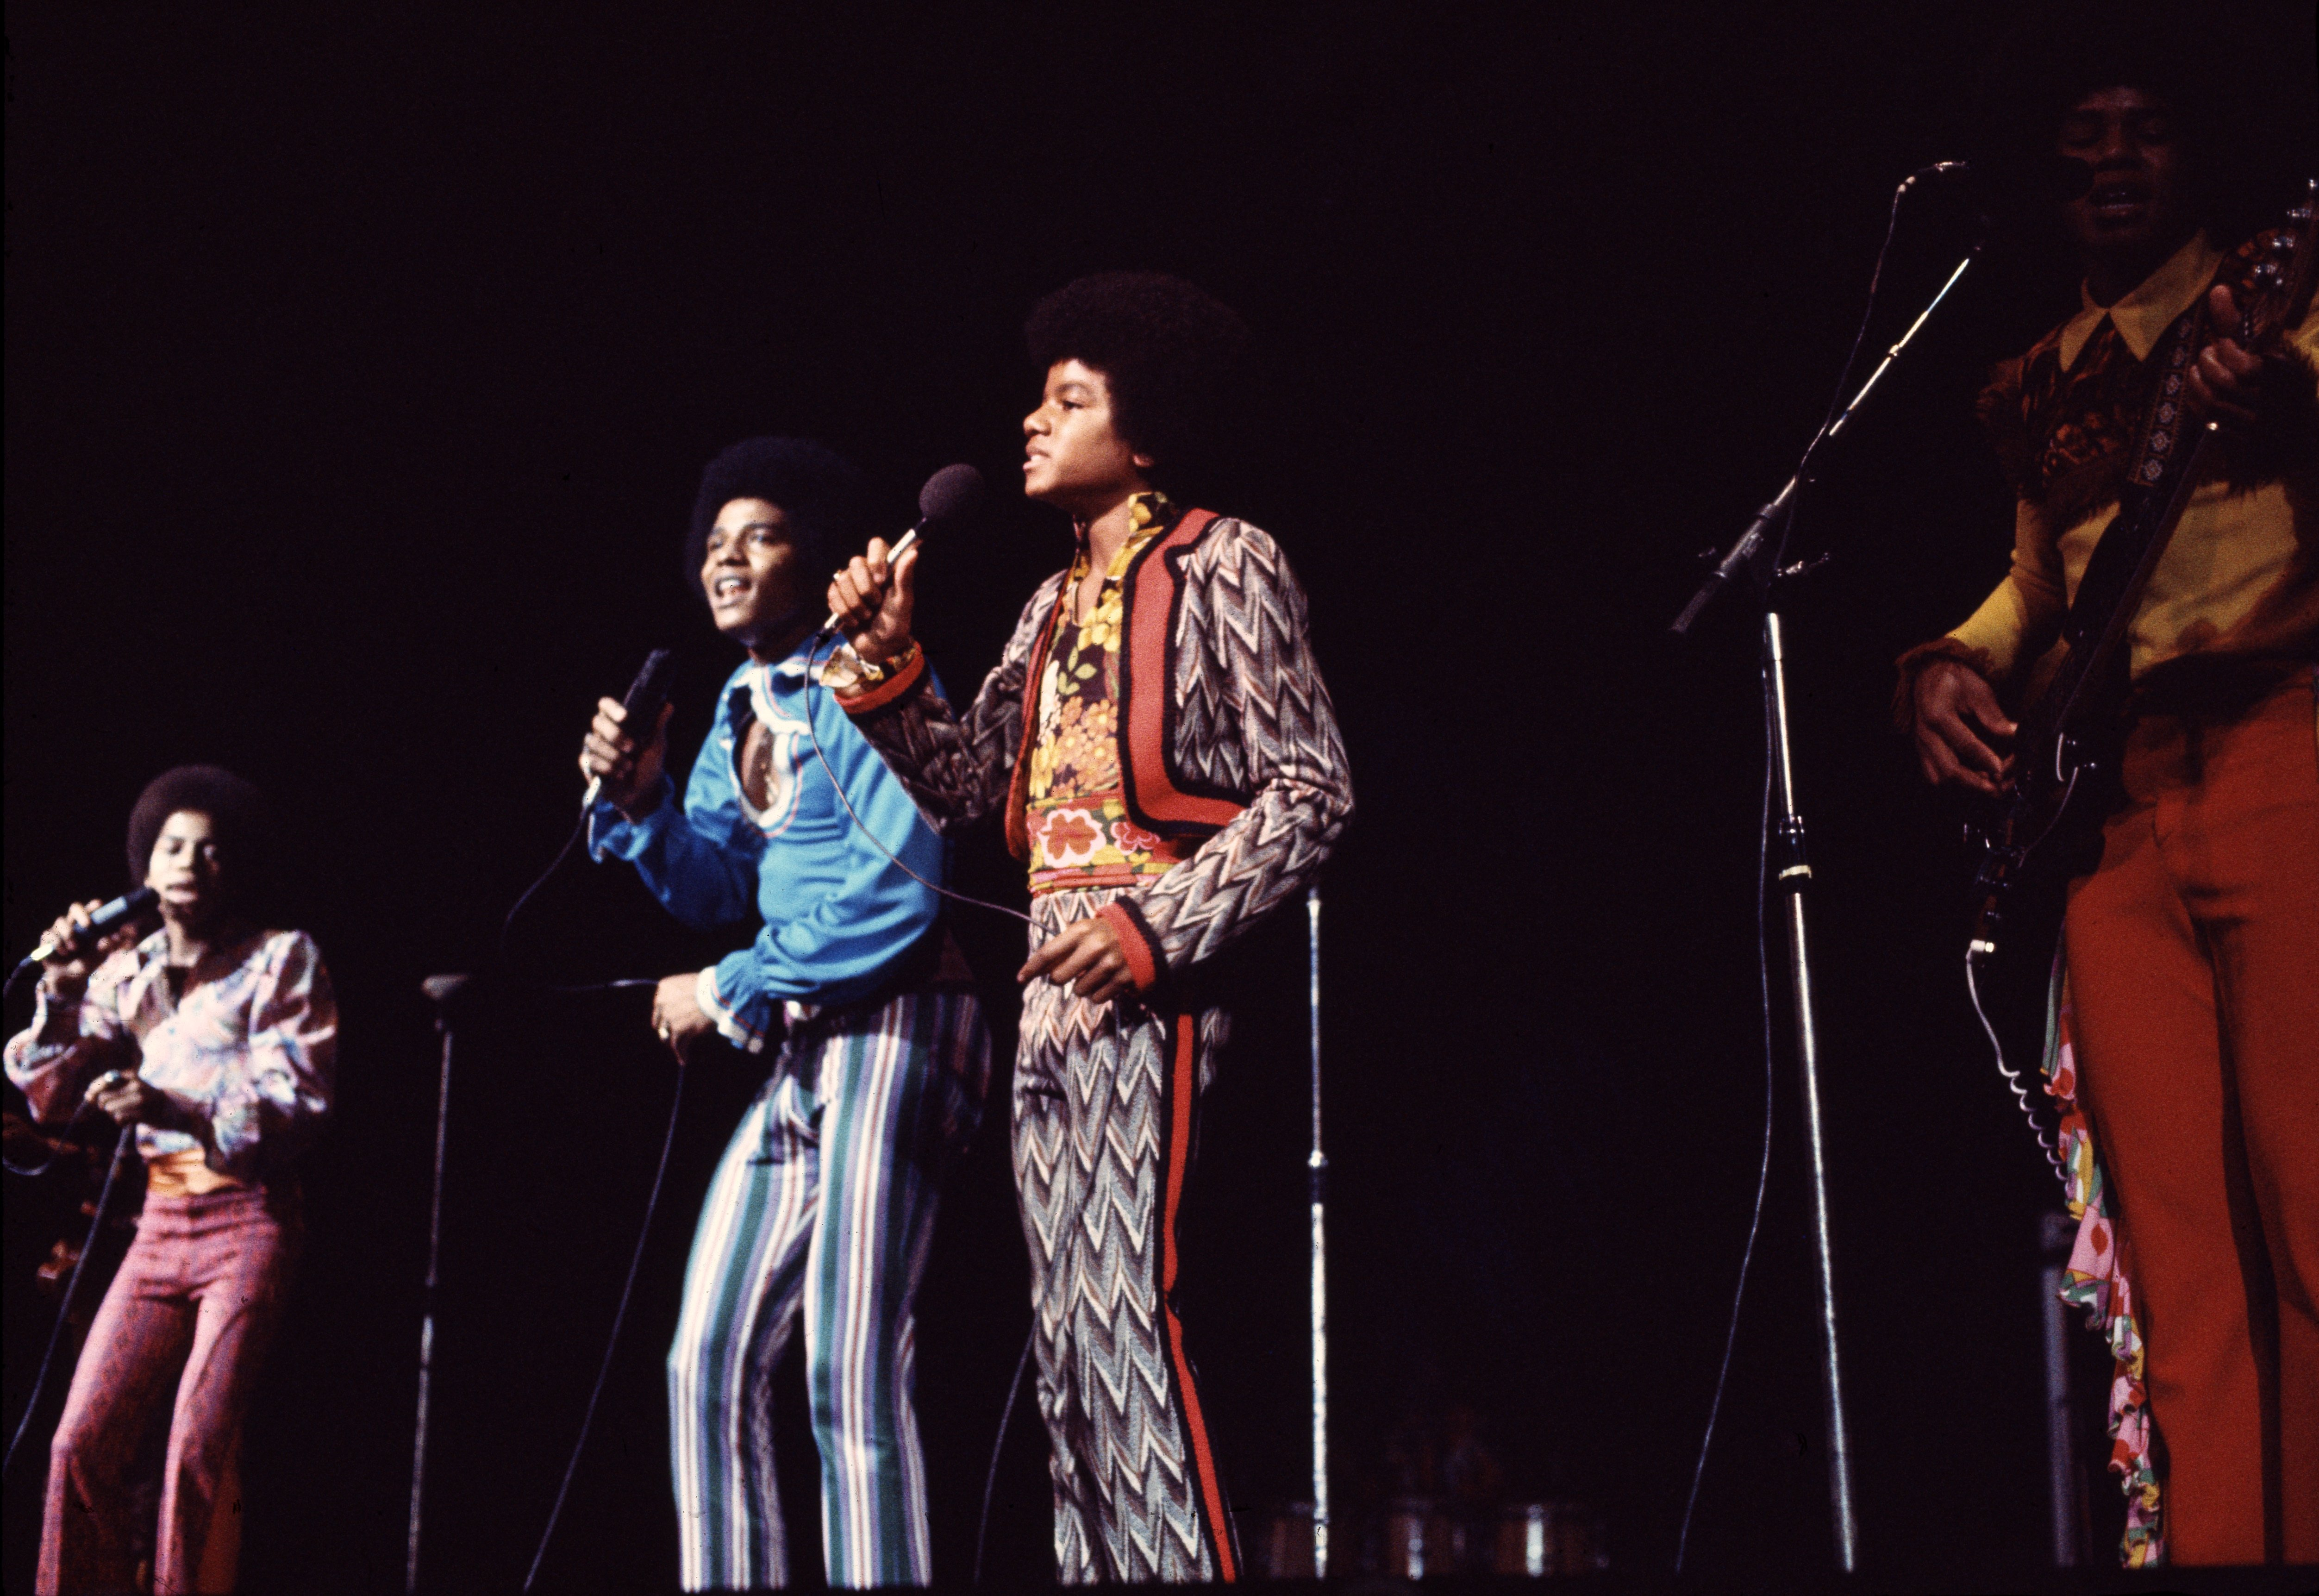 Michael Jackson on stage with the Jackson Five in London, in 1972 | Source: Getty Images